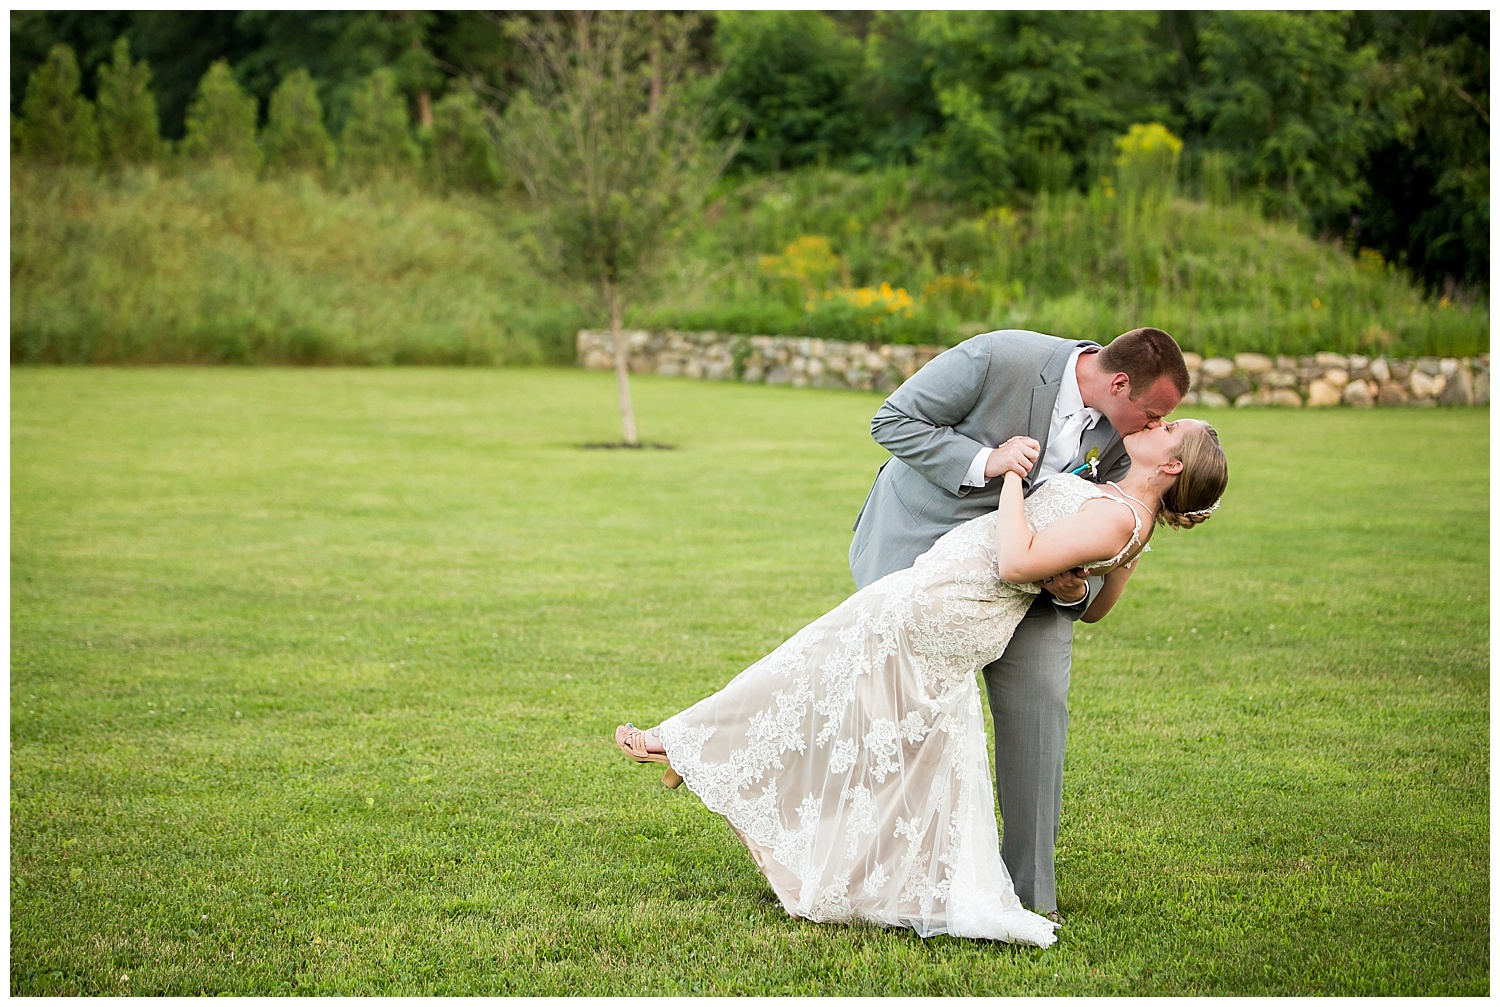 Jolene & Josh – Groveland Fairways Wedding